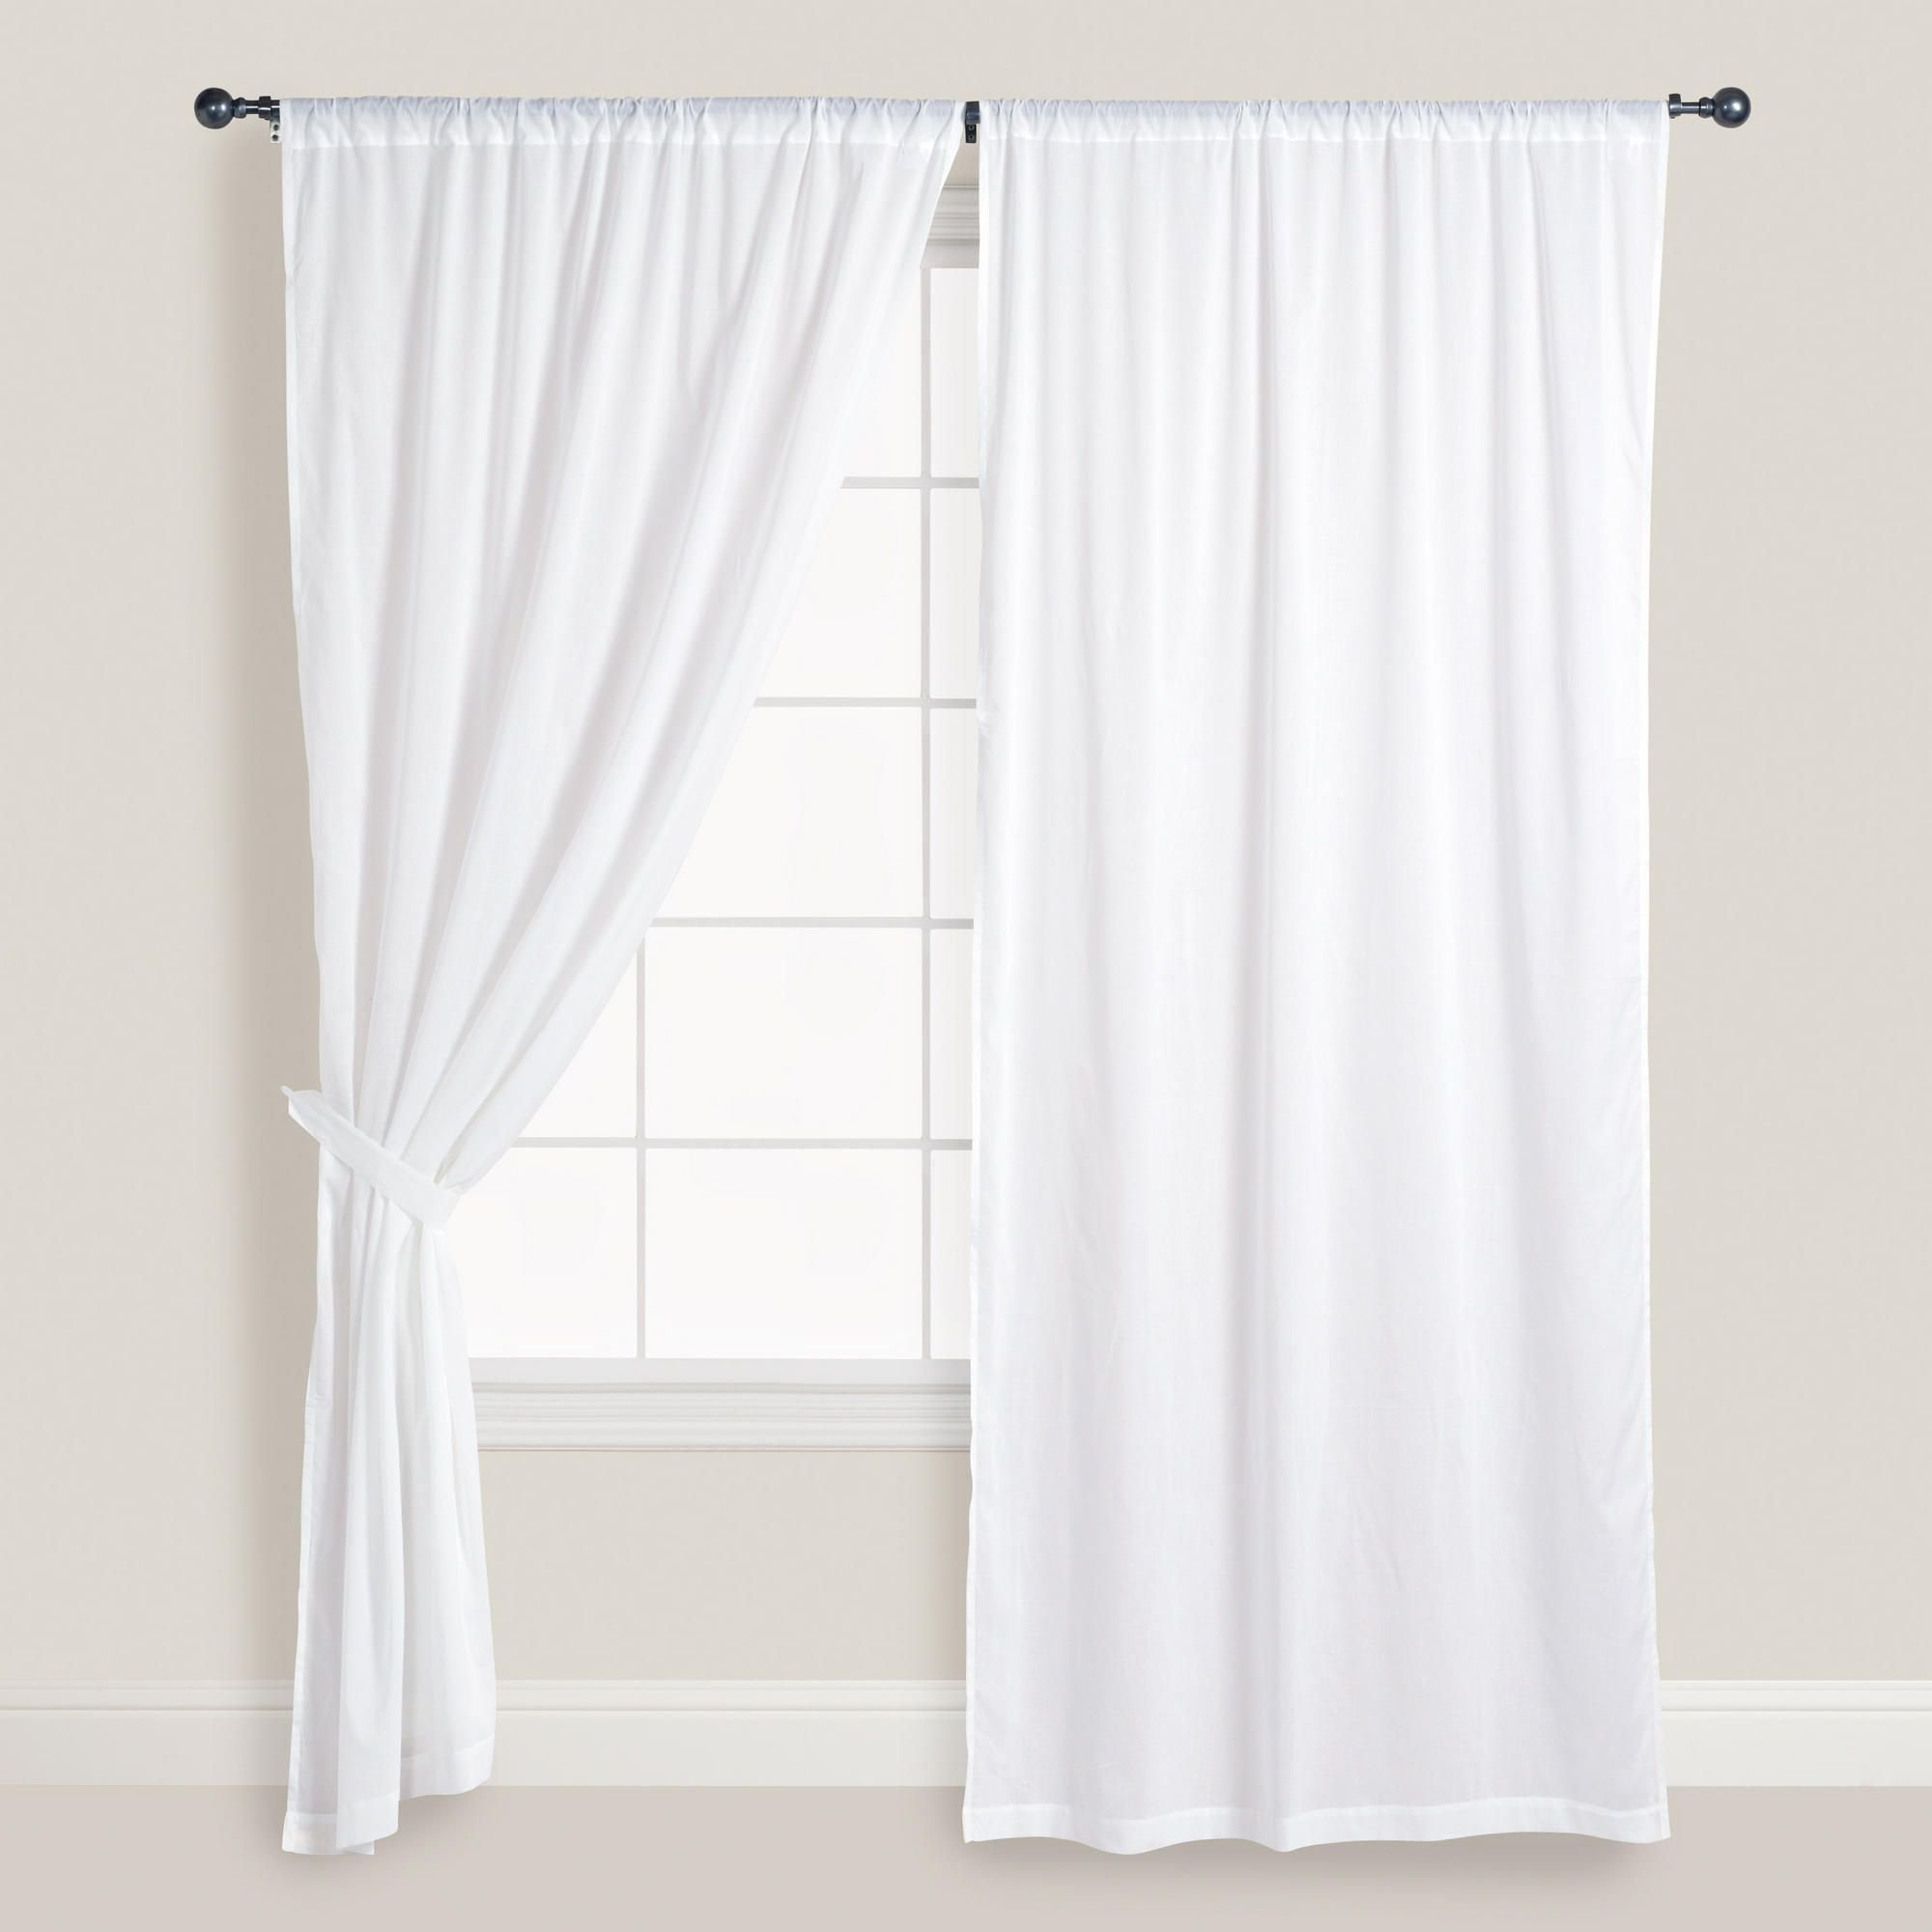 Best White Cotton Voile Curtains Set Of 2 Window Doors And With Pictures